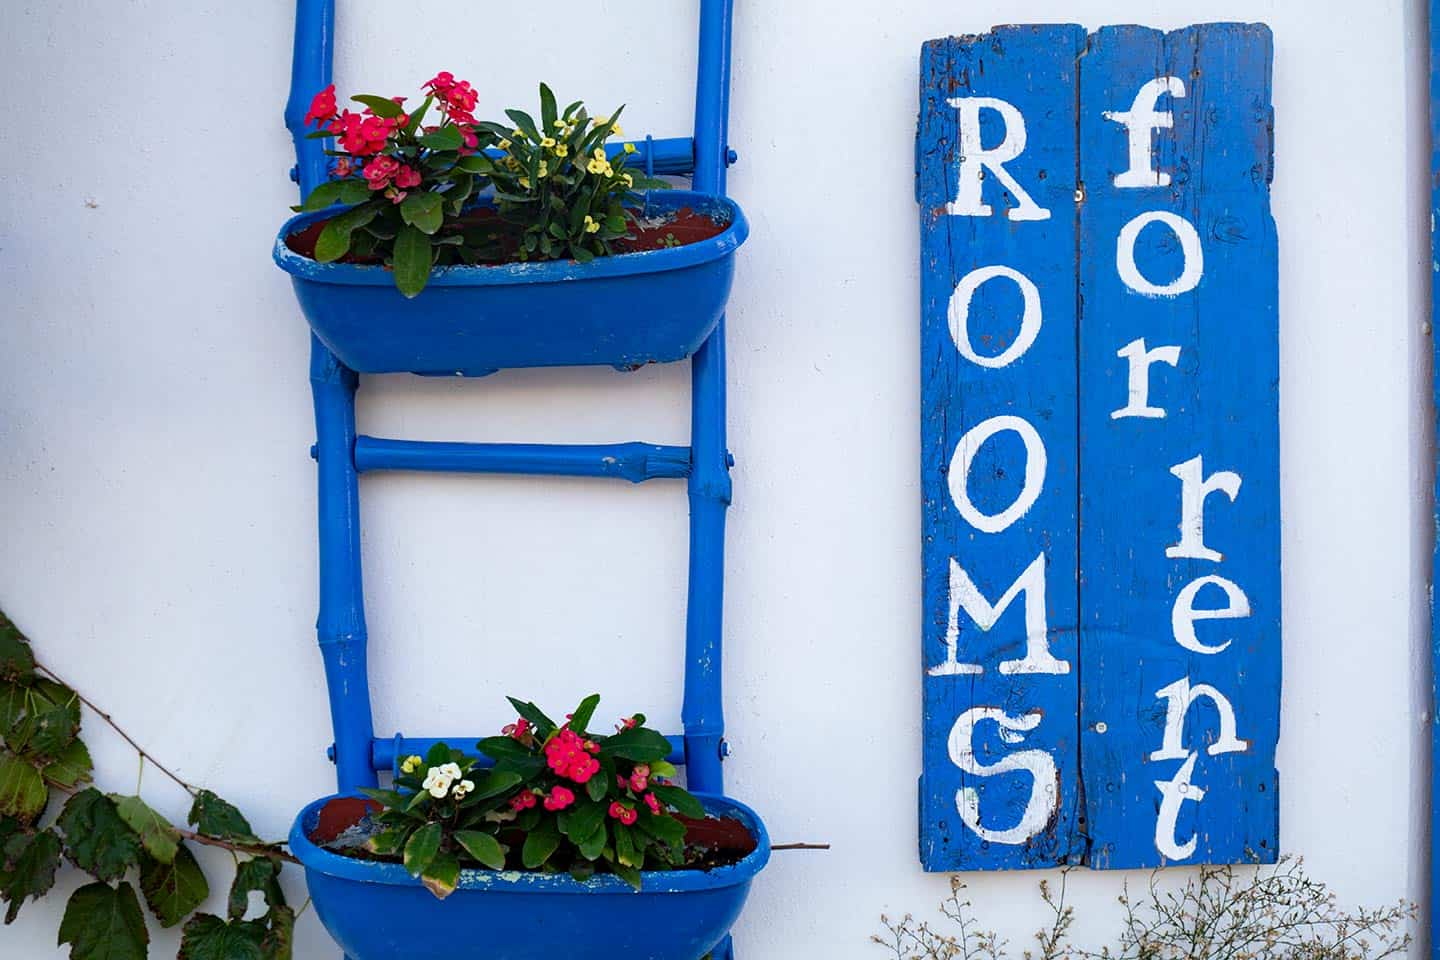 Paleochora Accommodation Image of a 'rooms for rent' sign in Paleochora Crete